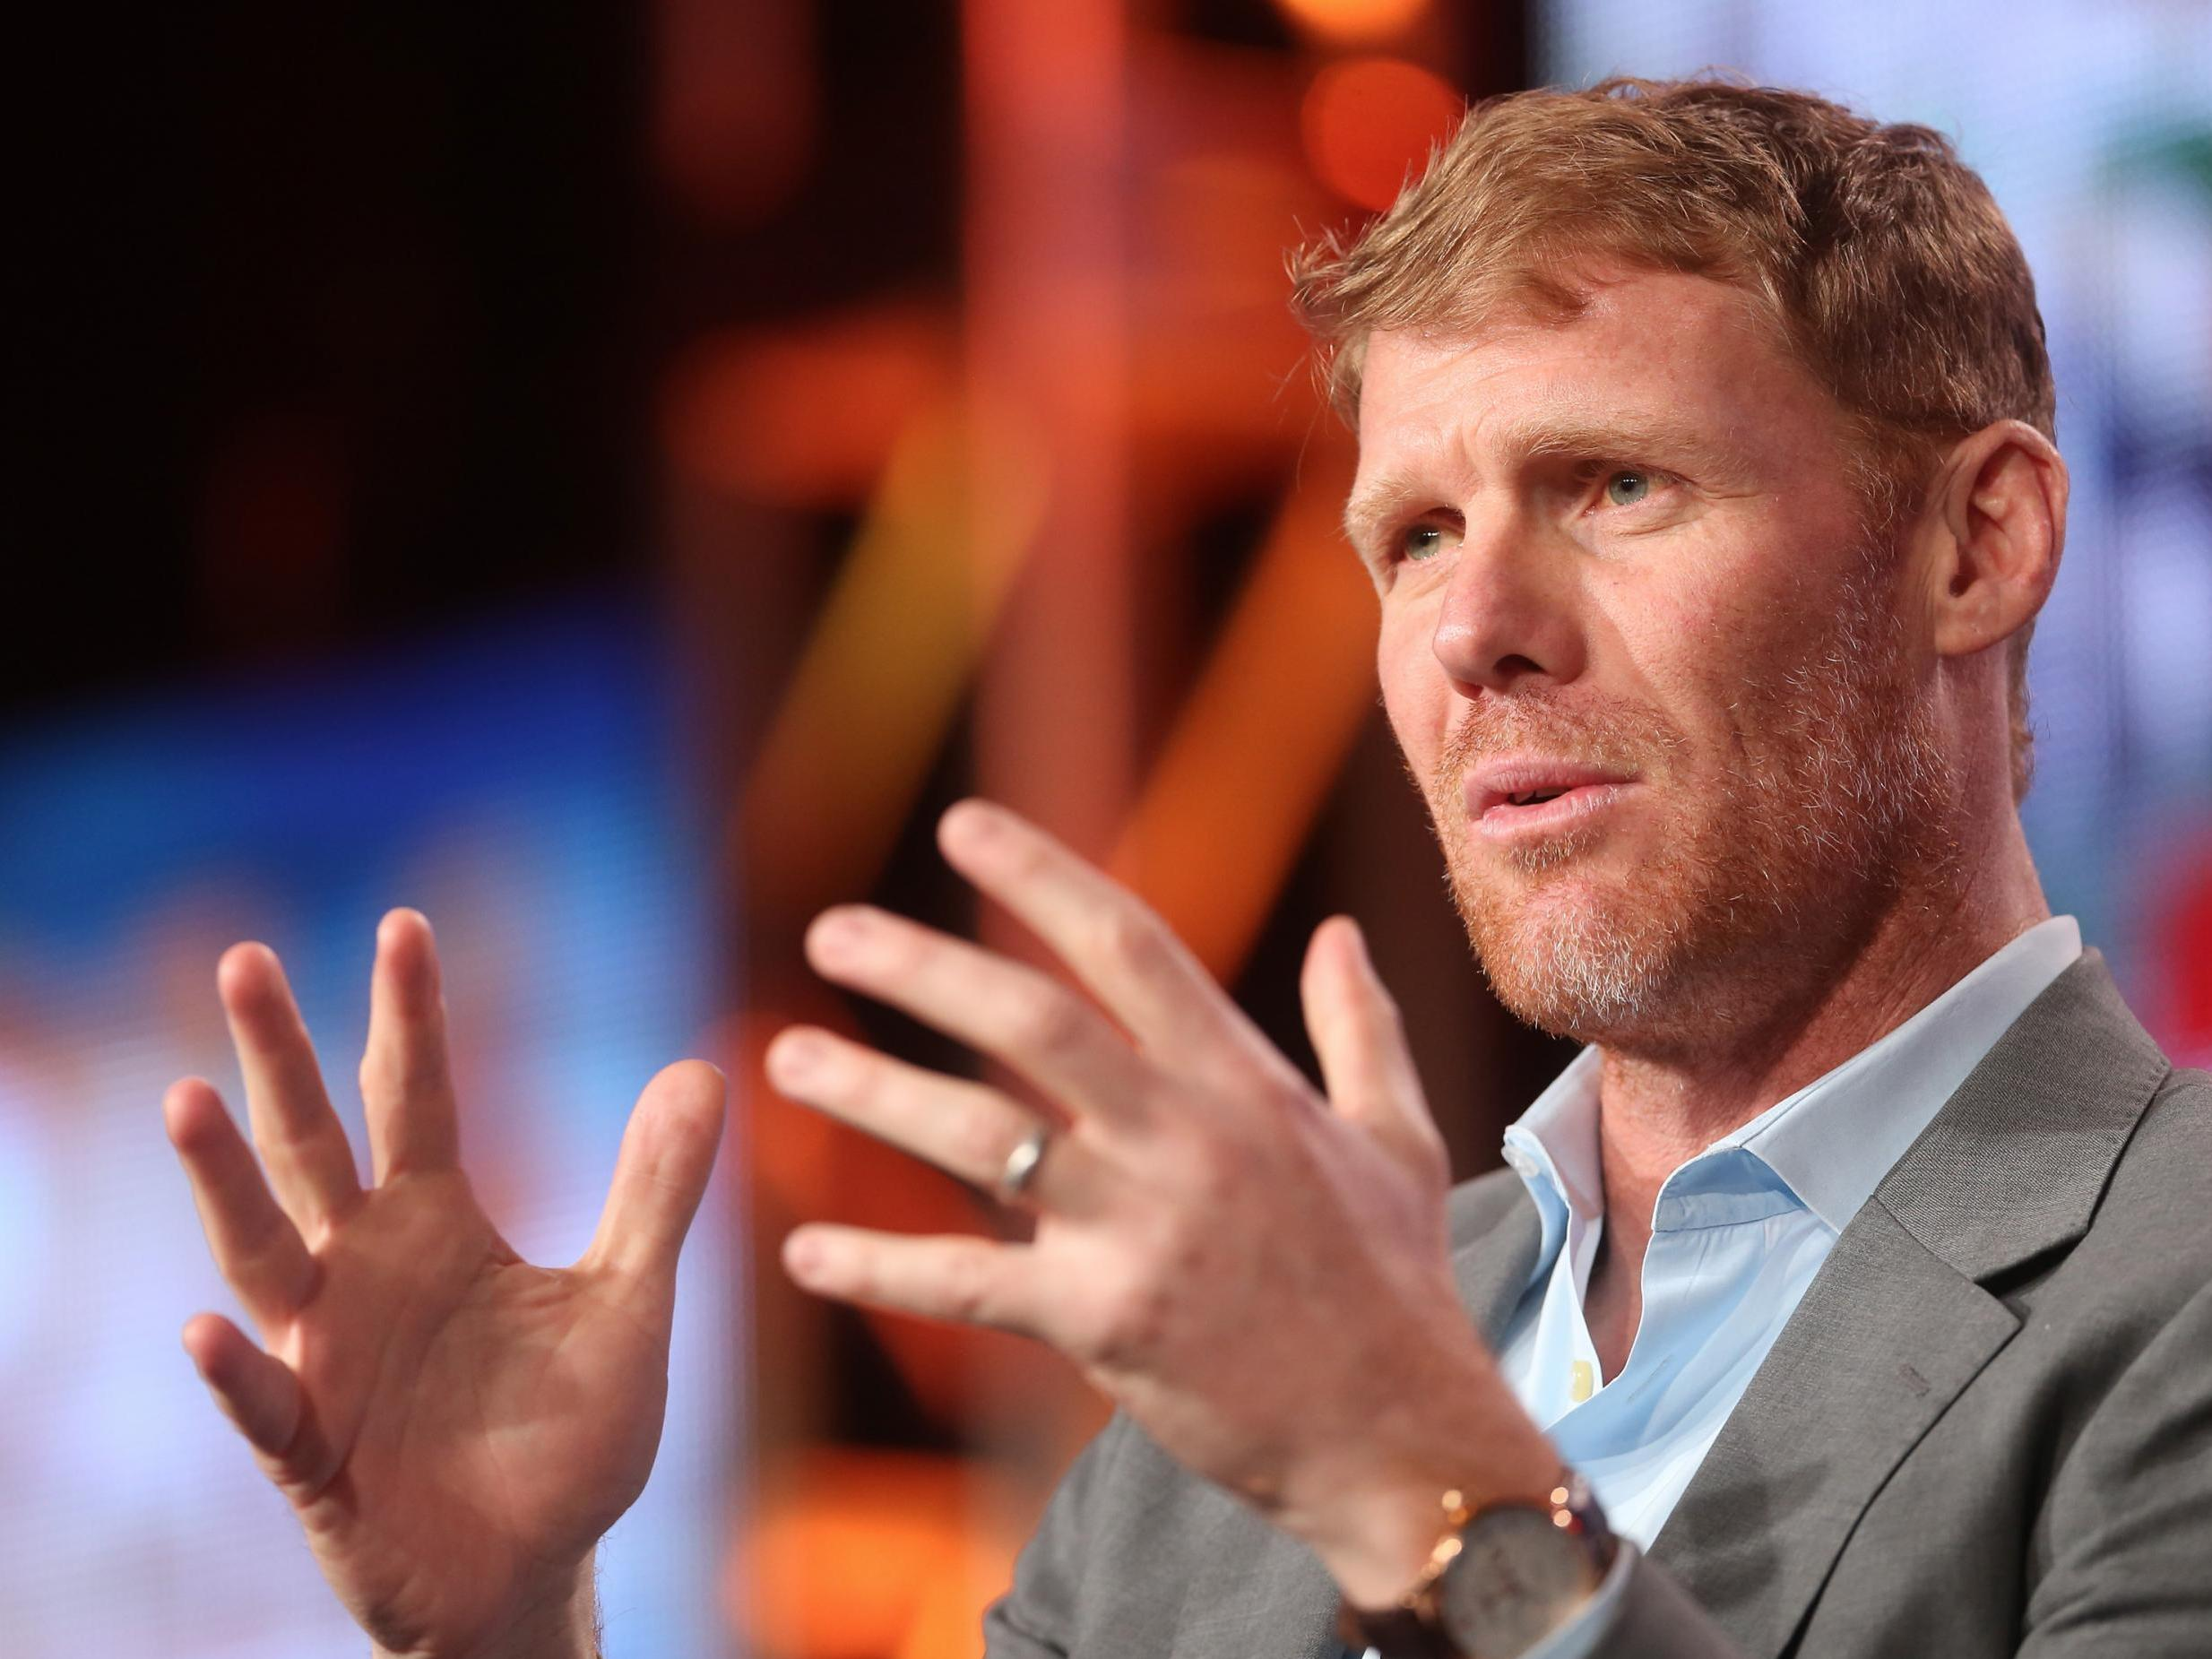 England vs USA: Alexi Lalas on why all roads lead to the 2026 World Cup for the United States